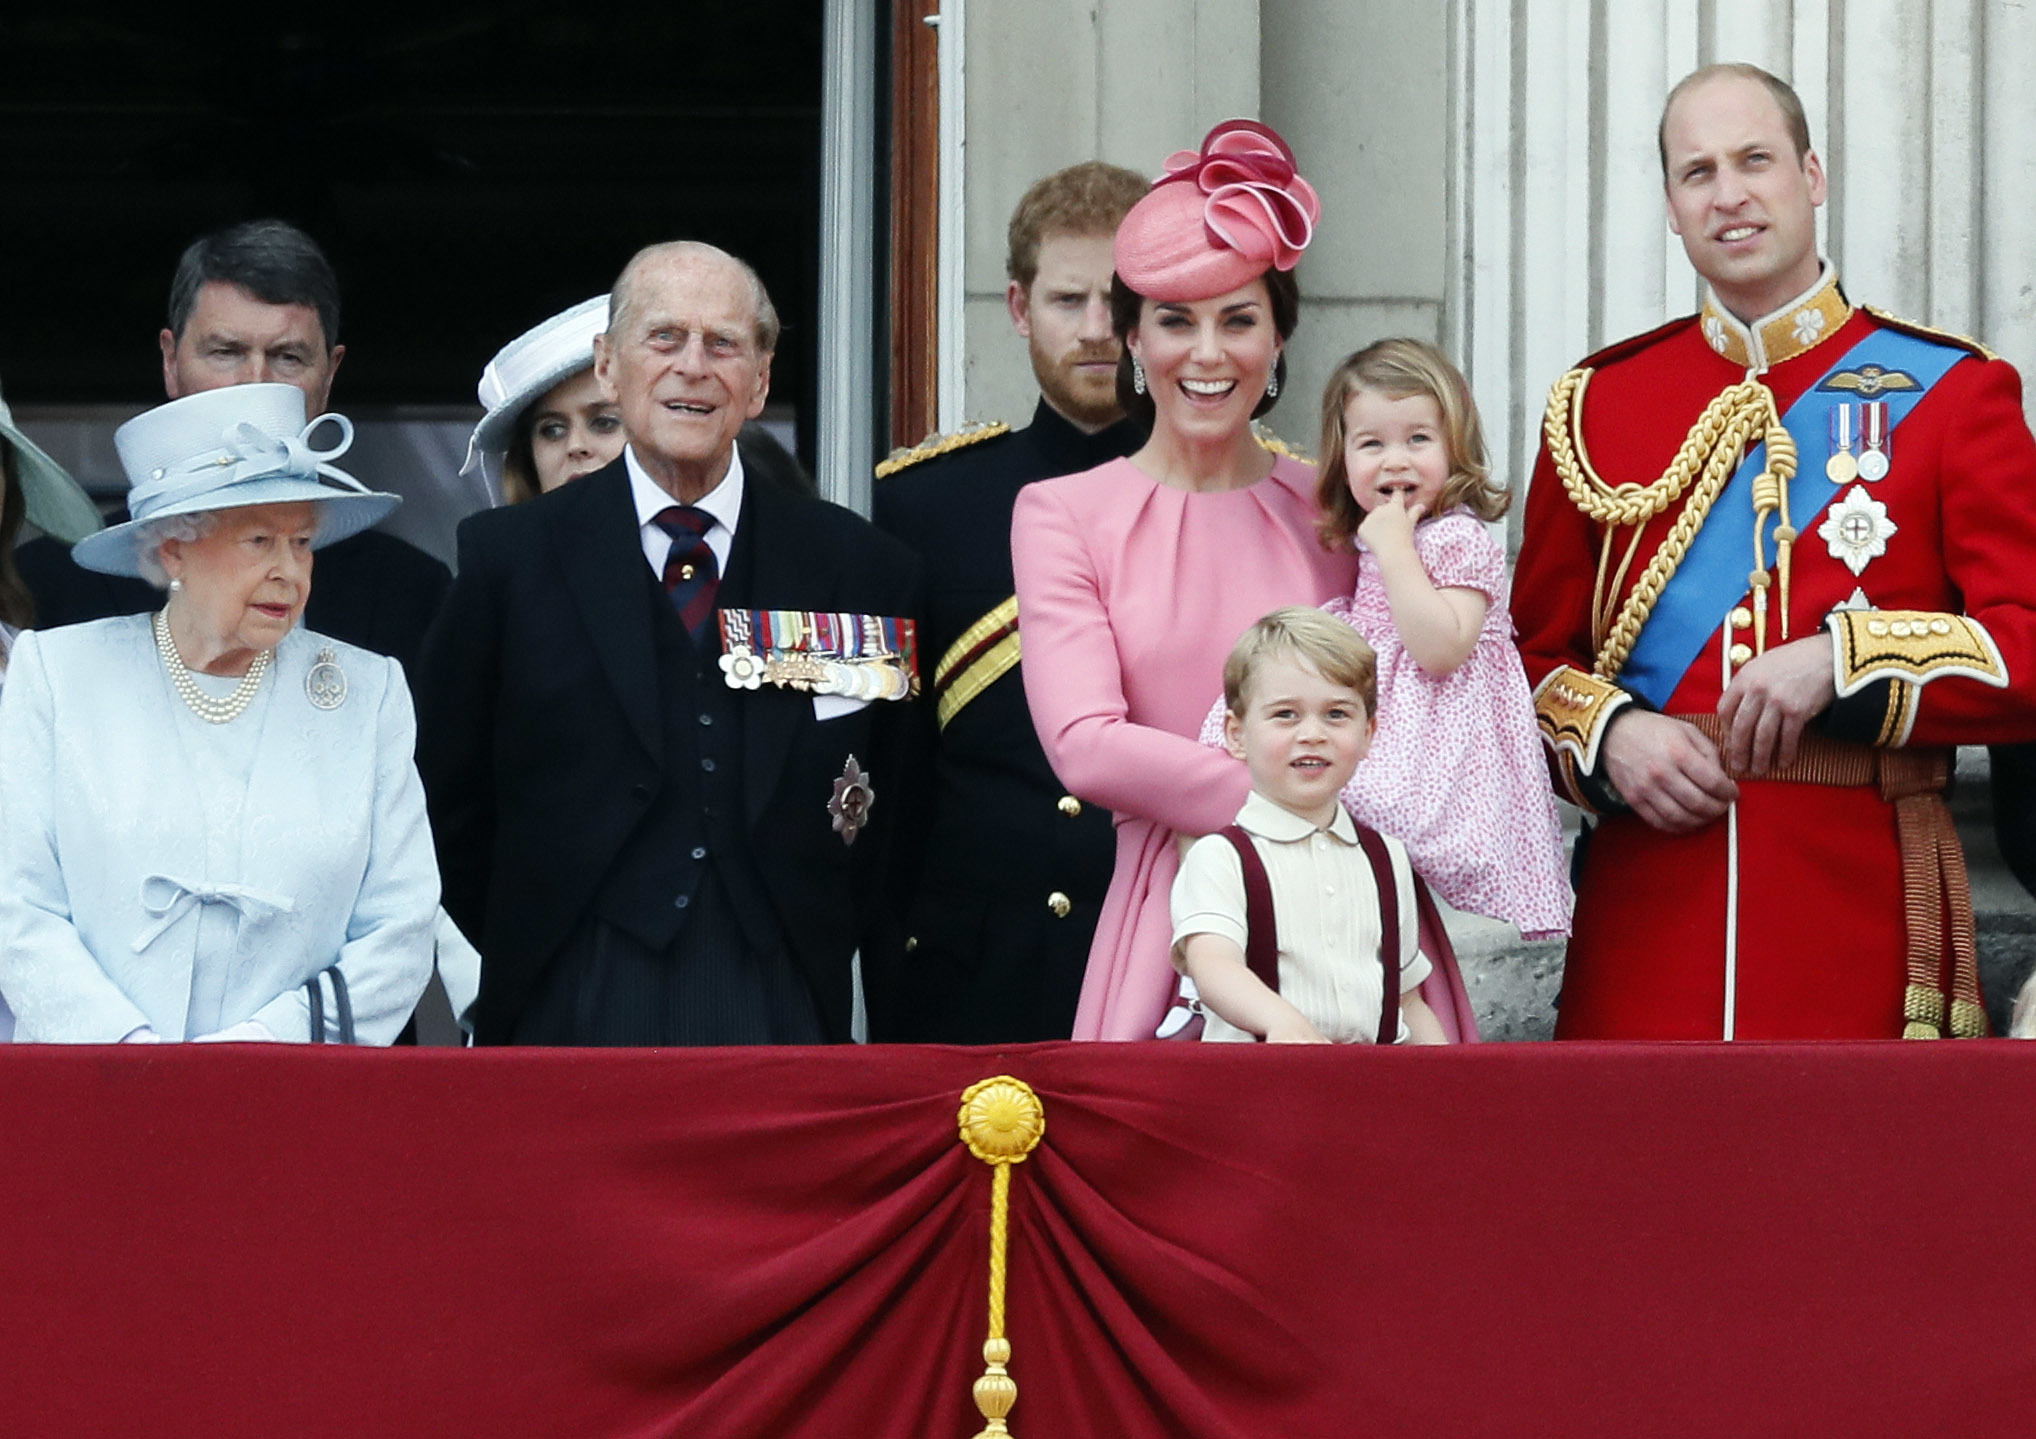 Queen Elizabeth, the Duke of Edinburgh, Prince Harry, Duchess of Cambridge (in Alexander McQueen) Prince William, Prince George and Princess Charlotte at the Trooping the Colour Parade